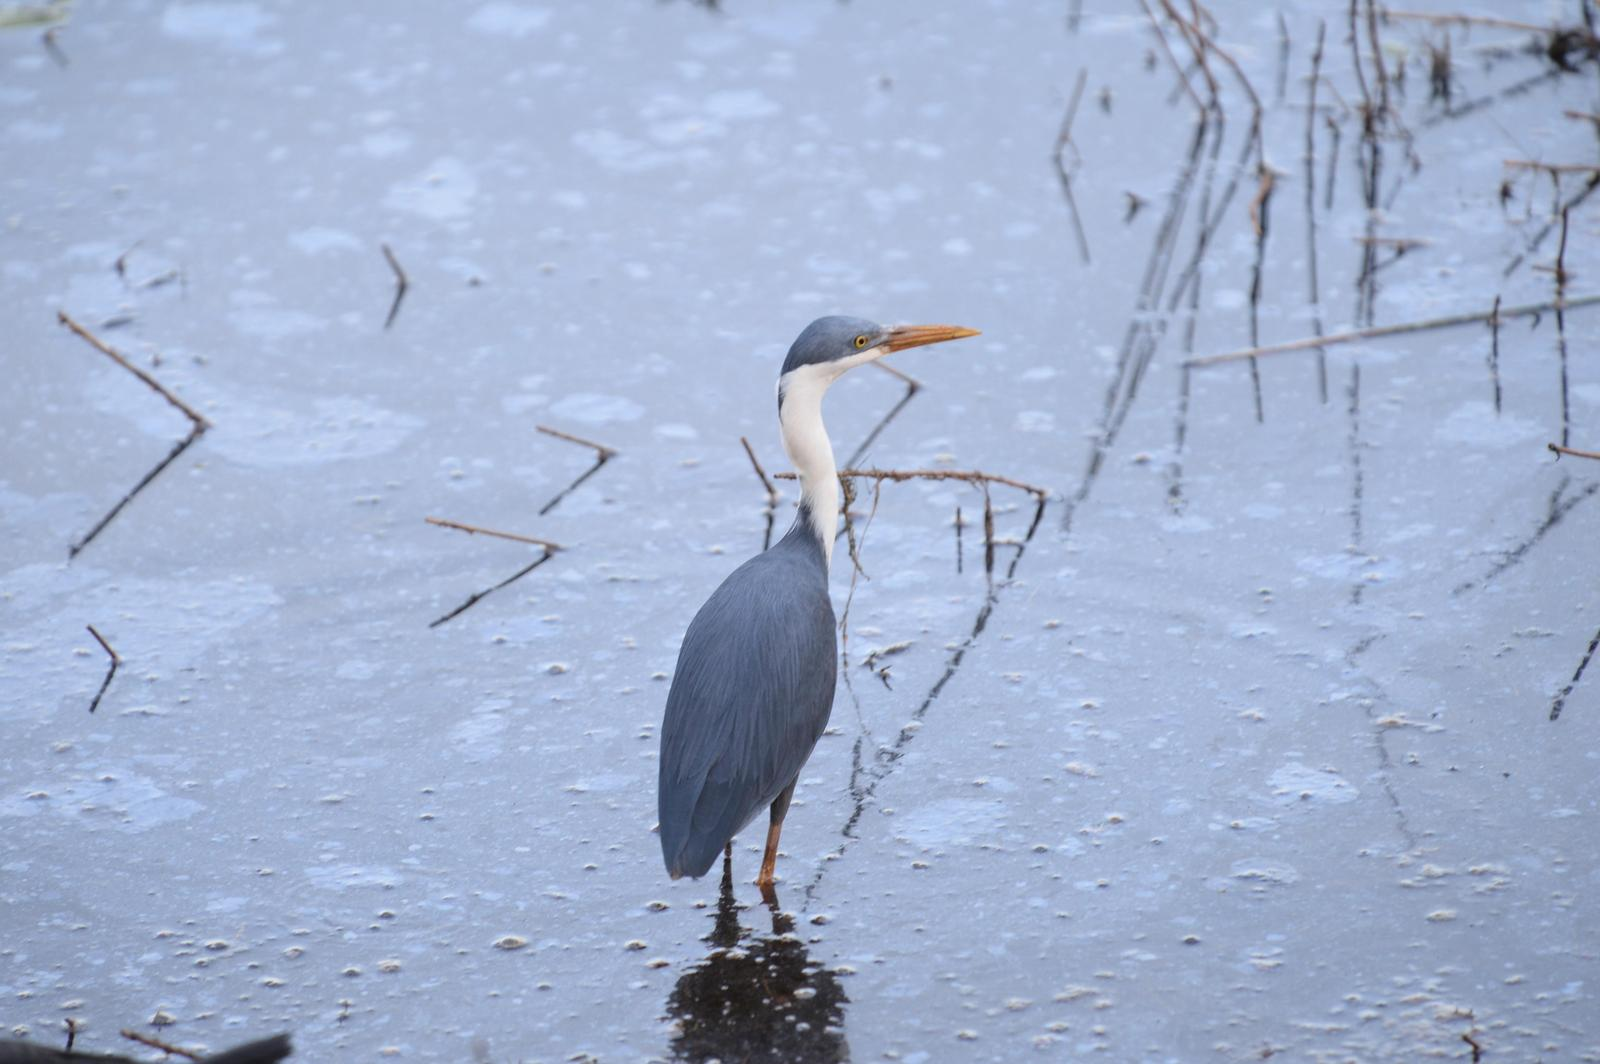 Pied Heron Photo by marcel finlay